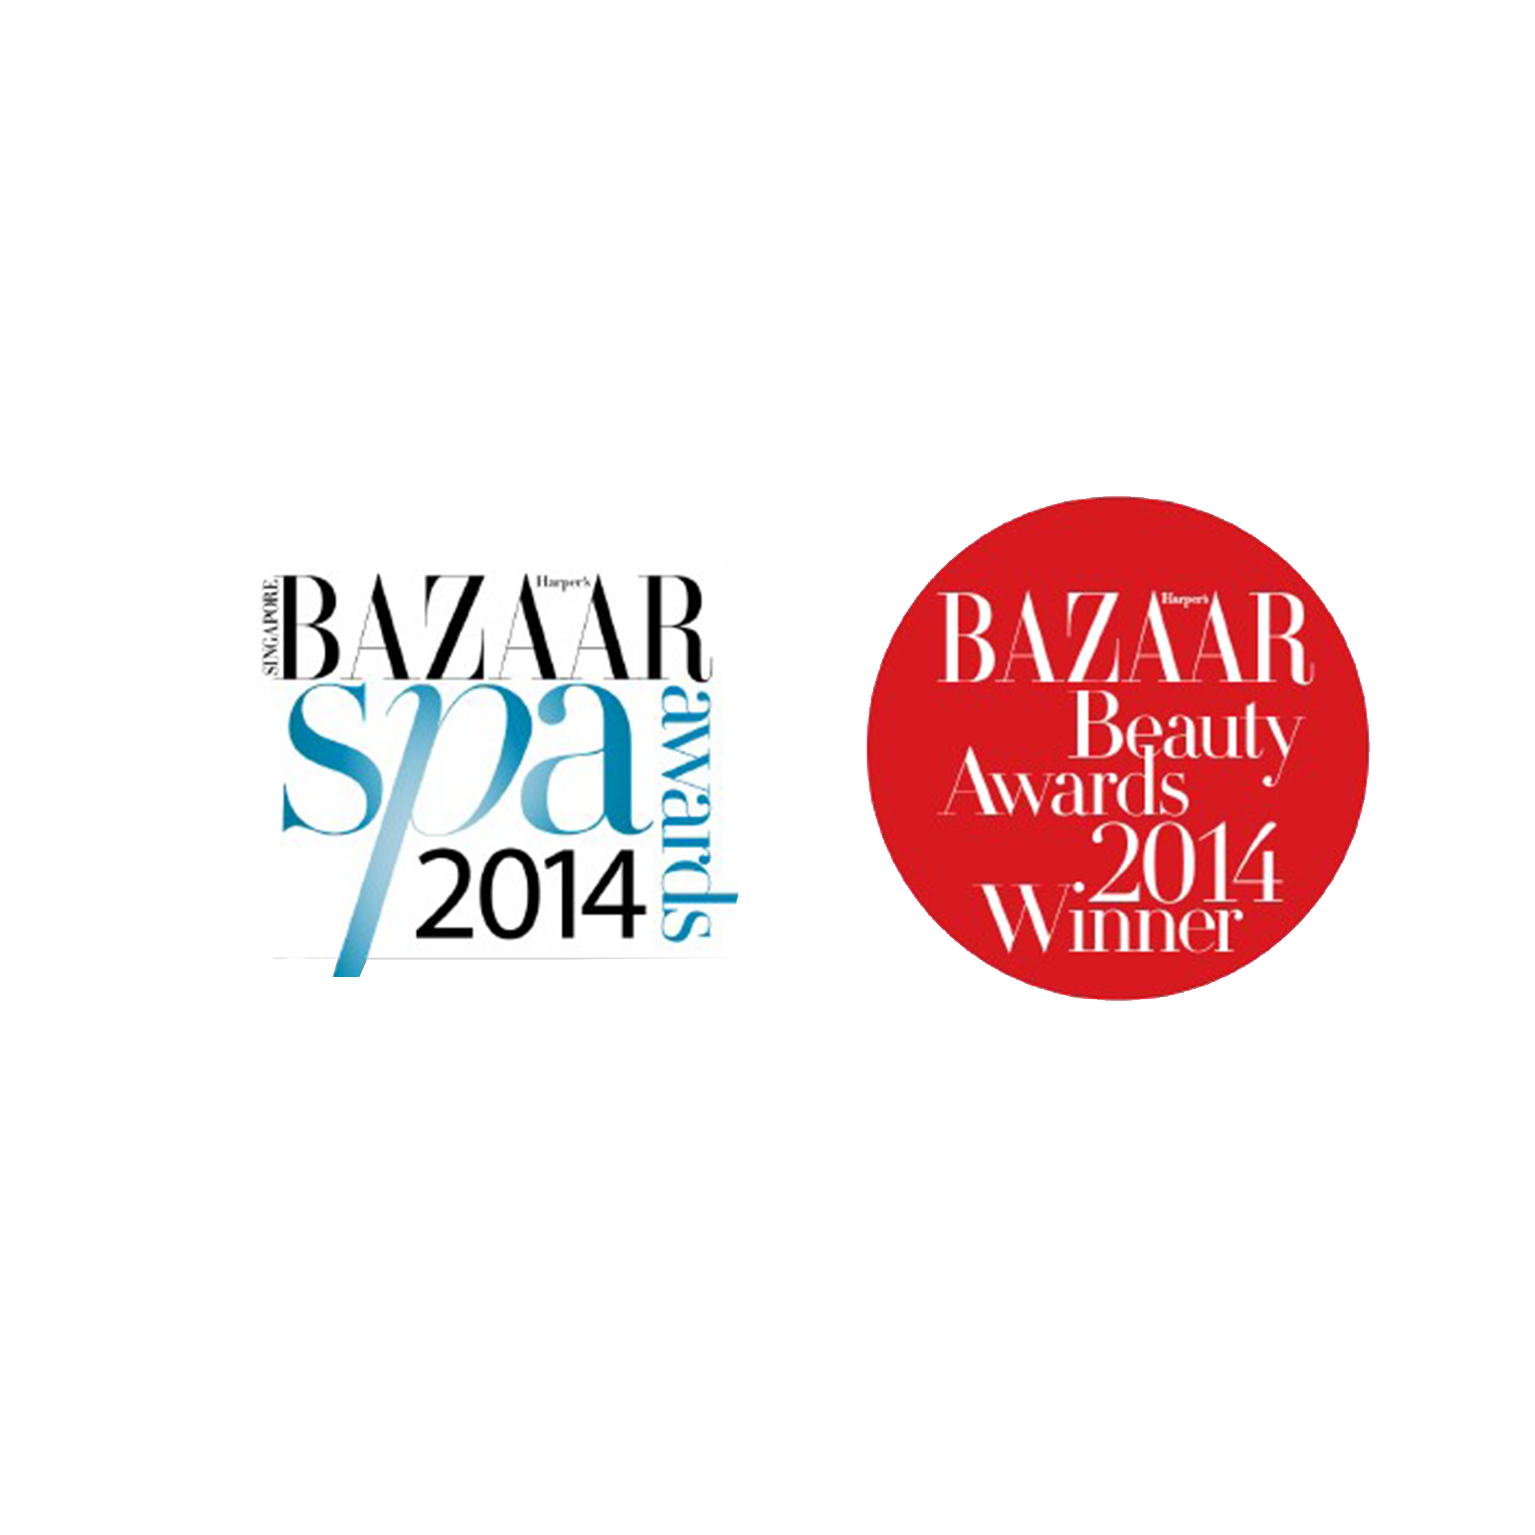 Bazaar-Beauty-Awards-2014